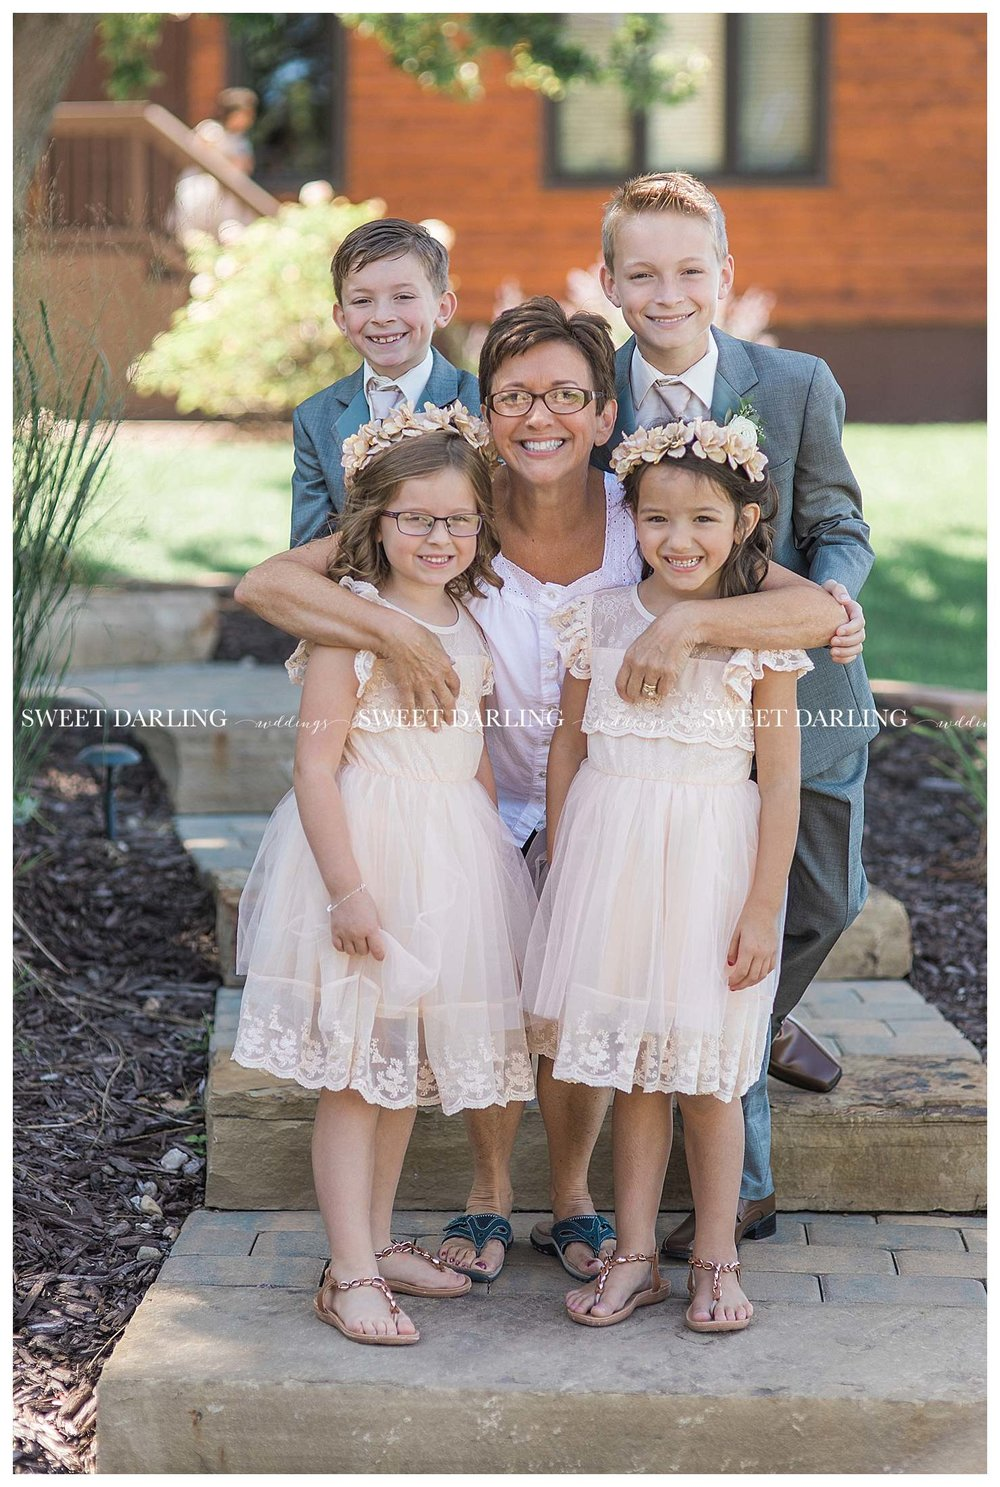 Grandma with grandkids at fall wedding